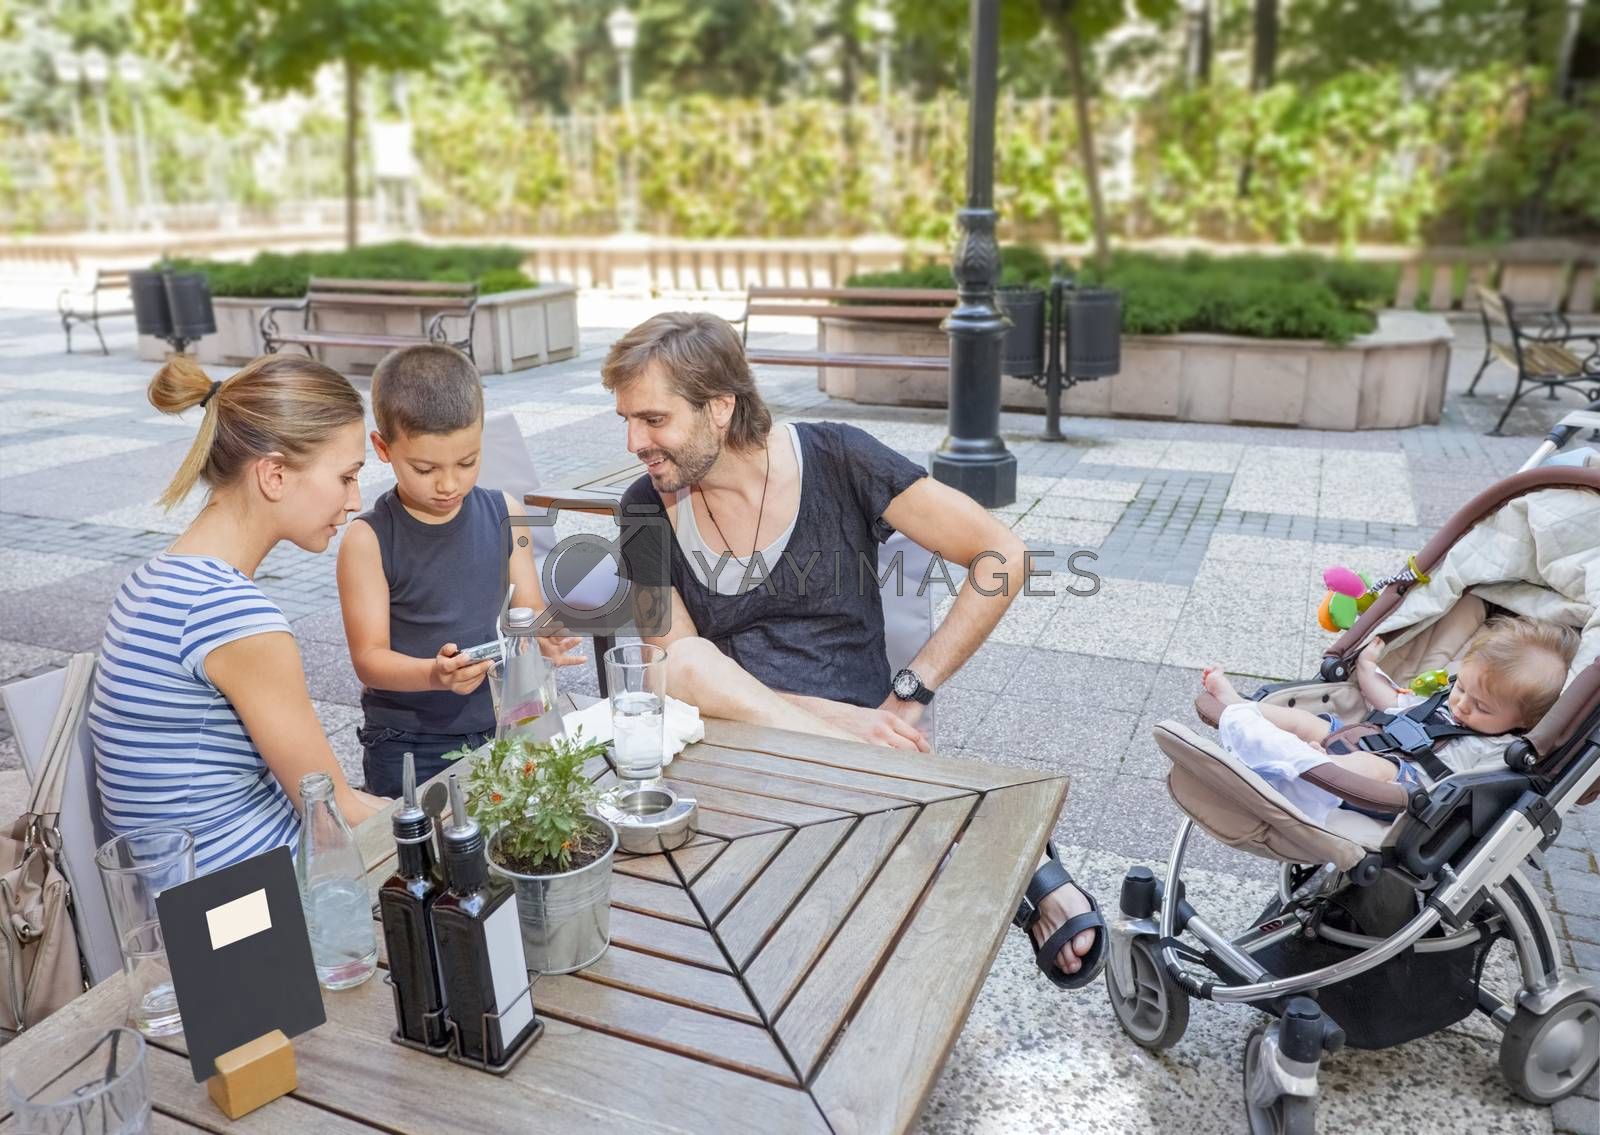 A young couple with their two children - a boy and a baby relaxing in a nice cafe outdoors in summer.